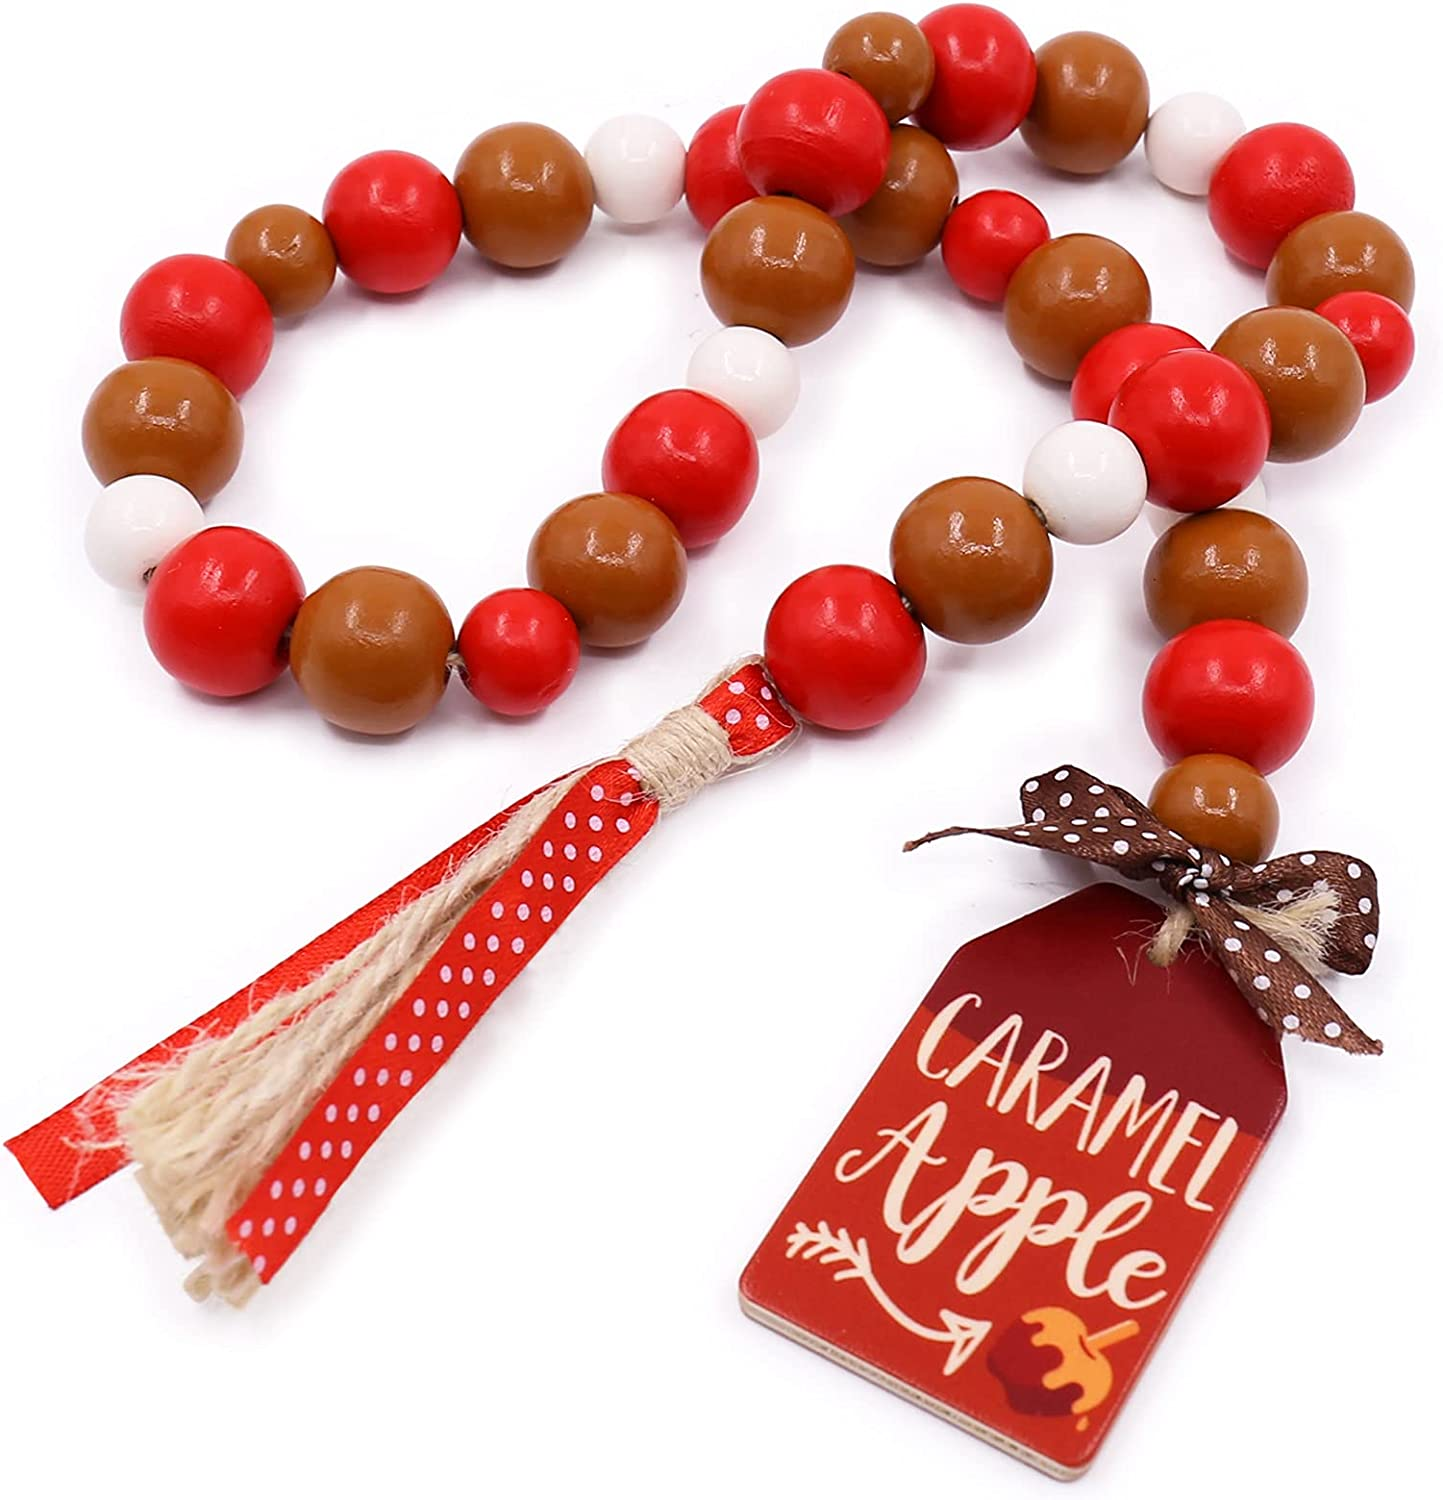 Caramel Apple Wood Bead Garland Fall Farmhouse Rustic with Jute Tassles Harvest Red Thanksgiving Natural Country Chic Décor Autumn Holiday Back to School Home Supplies Teacher Gifts